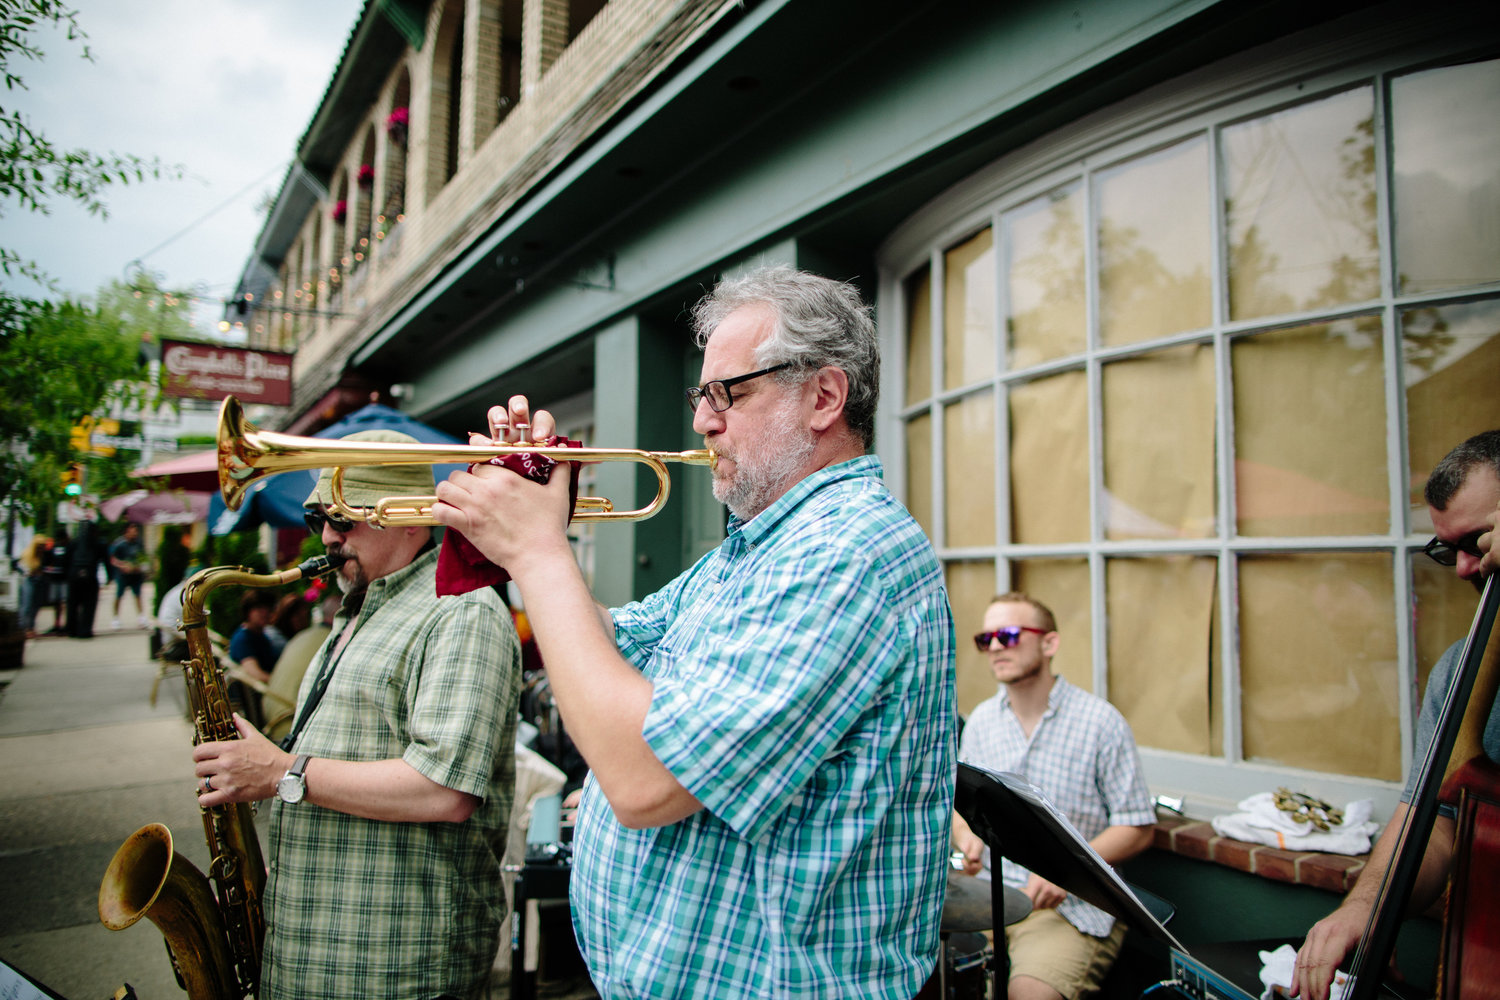 A band plays at a prior Home & Garden Festival. Music scheduled for the upcoming stroll include a Zydeco band and the cover band Variable Elements. Bands will perform off-of Germantown Avenue at the Top of the Hill and at the Mermaid Inn.